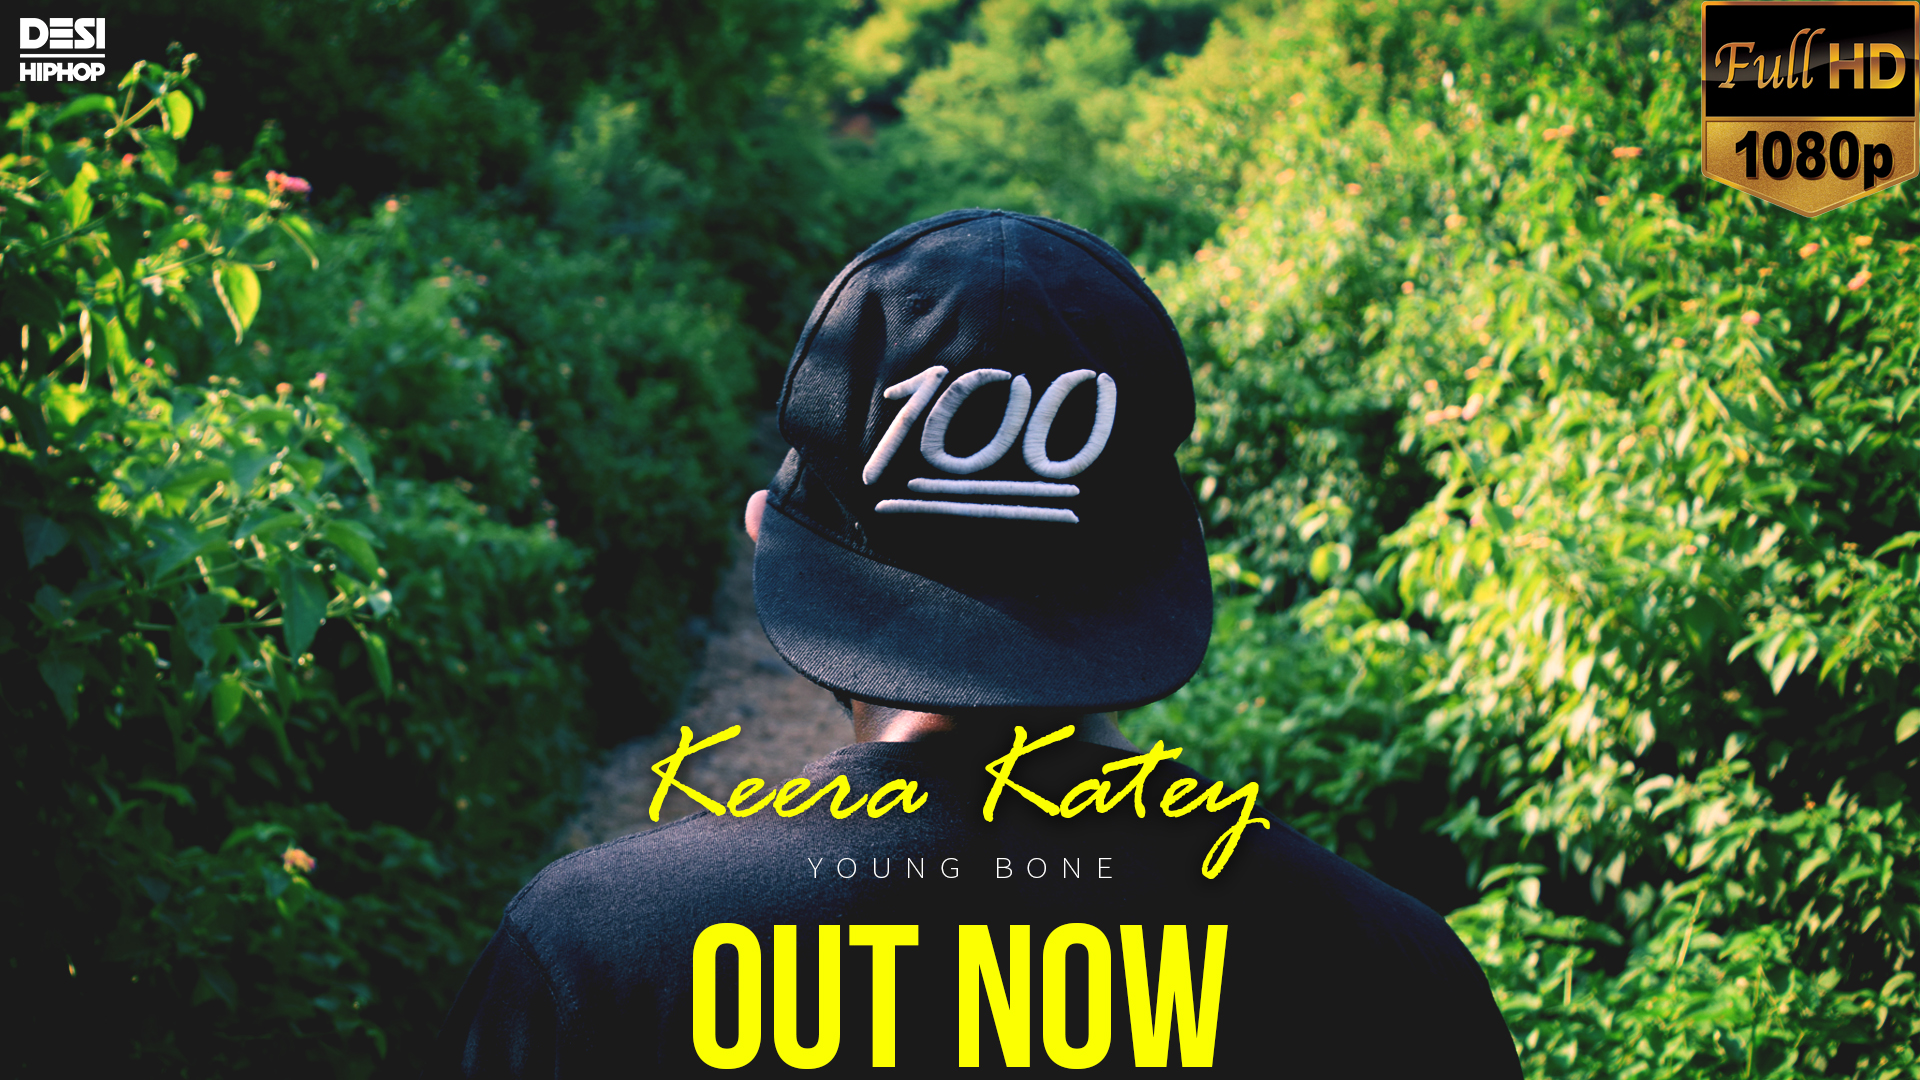 young bone keera katey music video